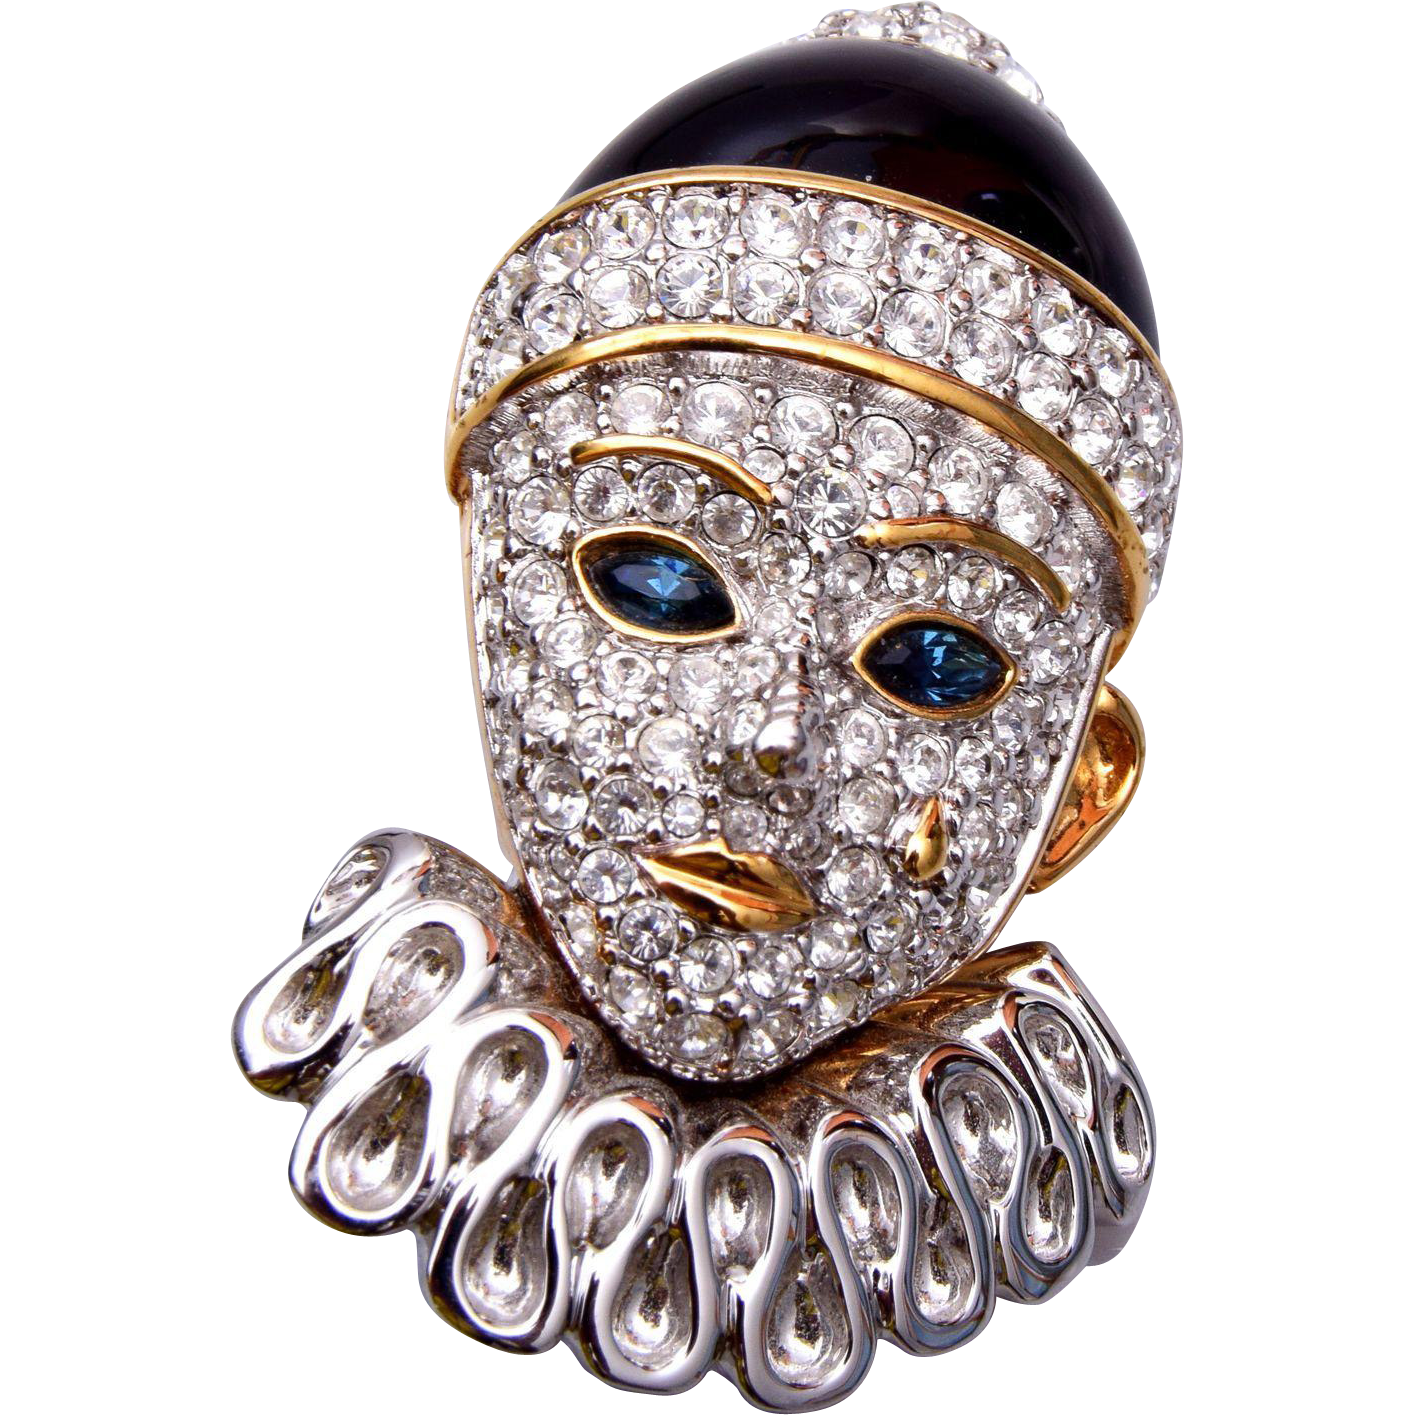 Swarovski Enameled Front and Back Crying Clown Face Brooch